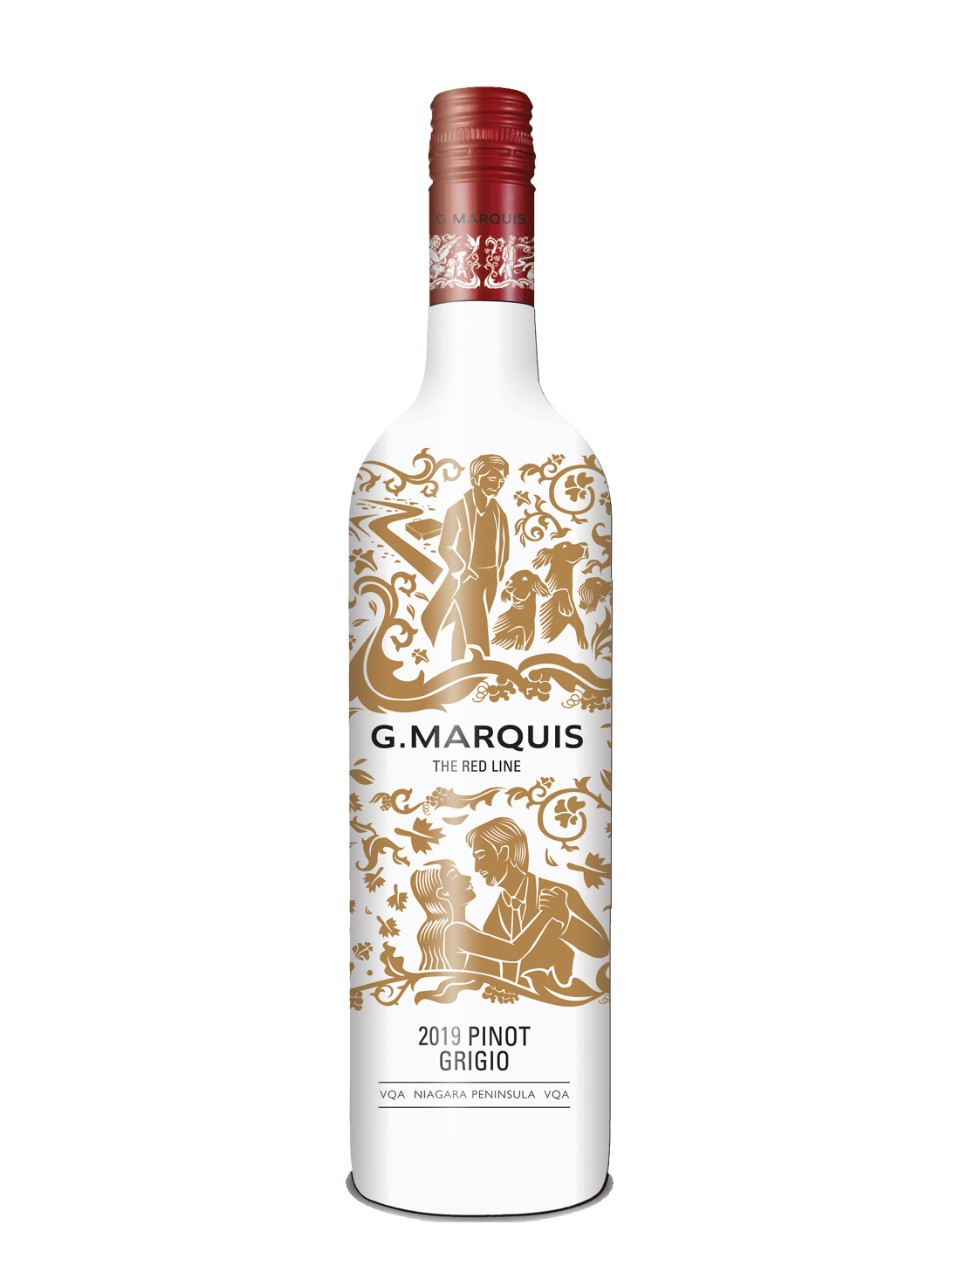 G. Marquis The Red Line Pinot Grigio VQA from LCBO